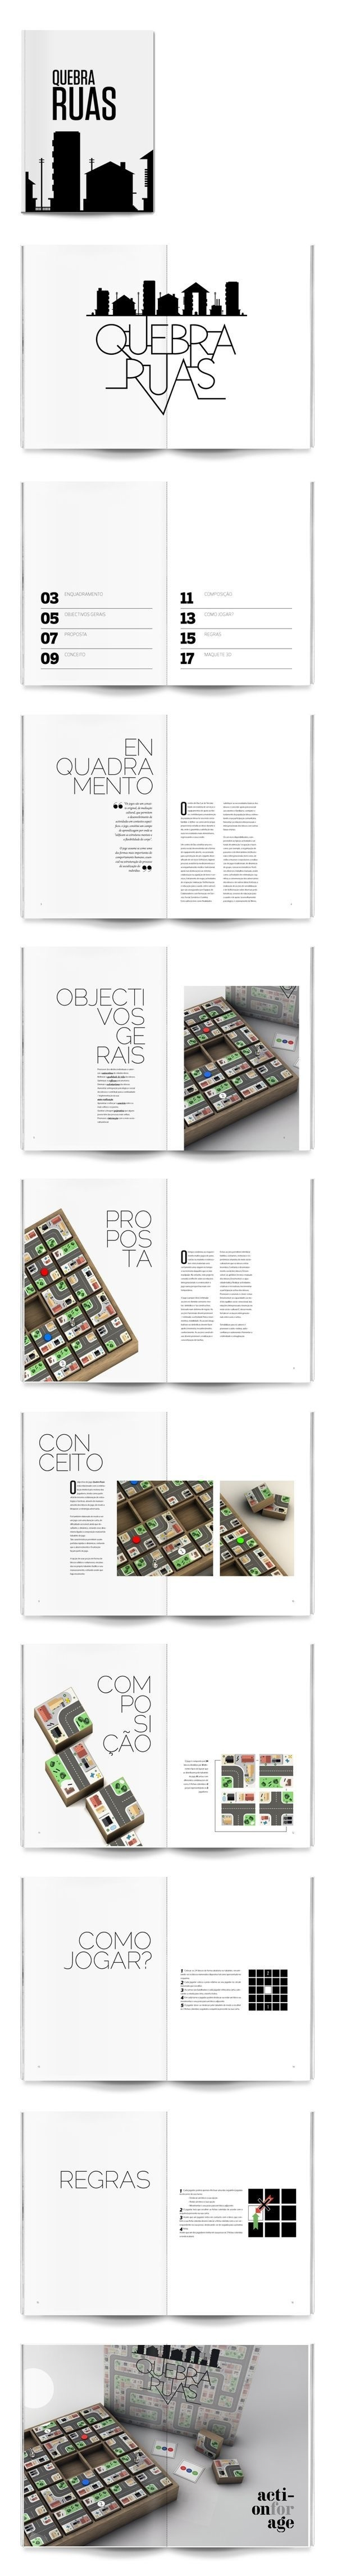 Layout. #print #design #graphic #layout